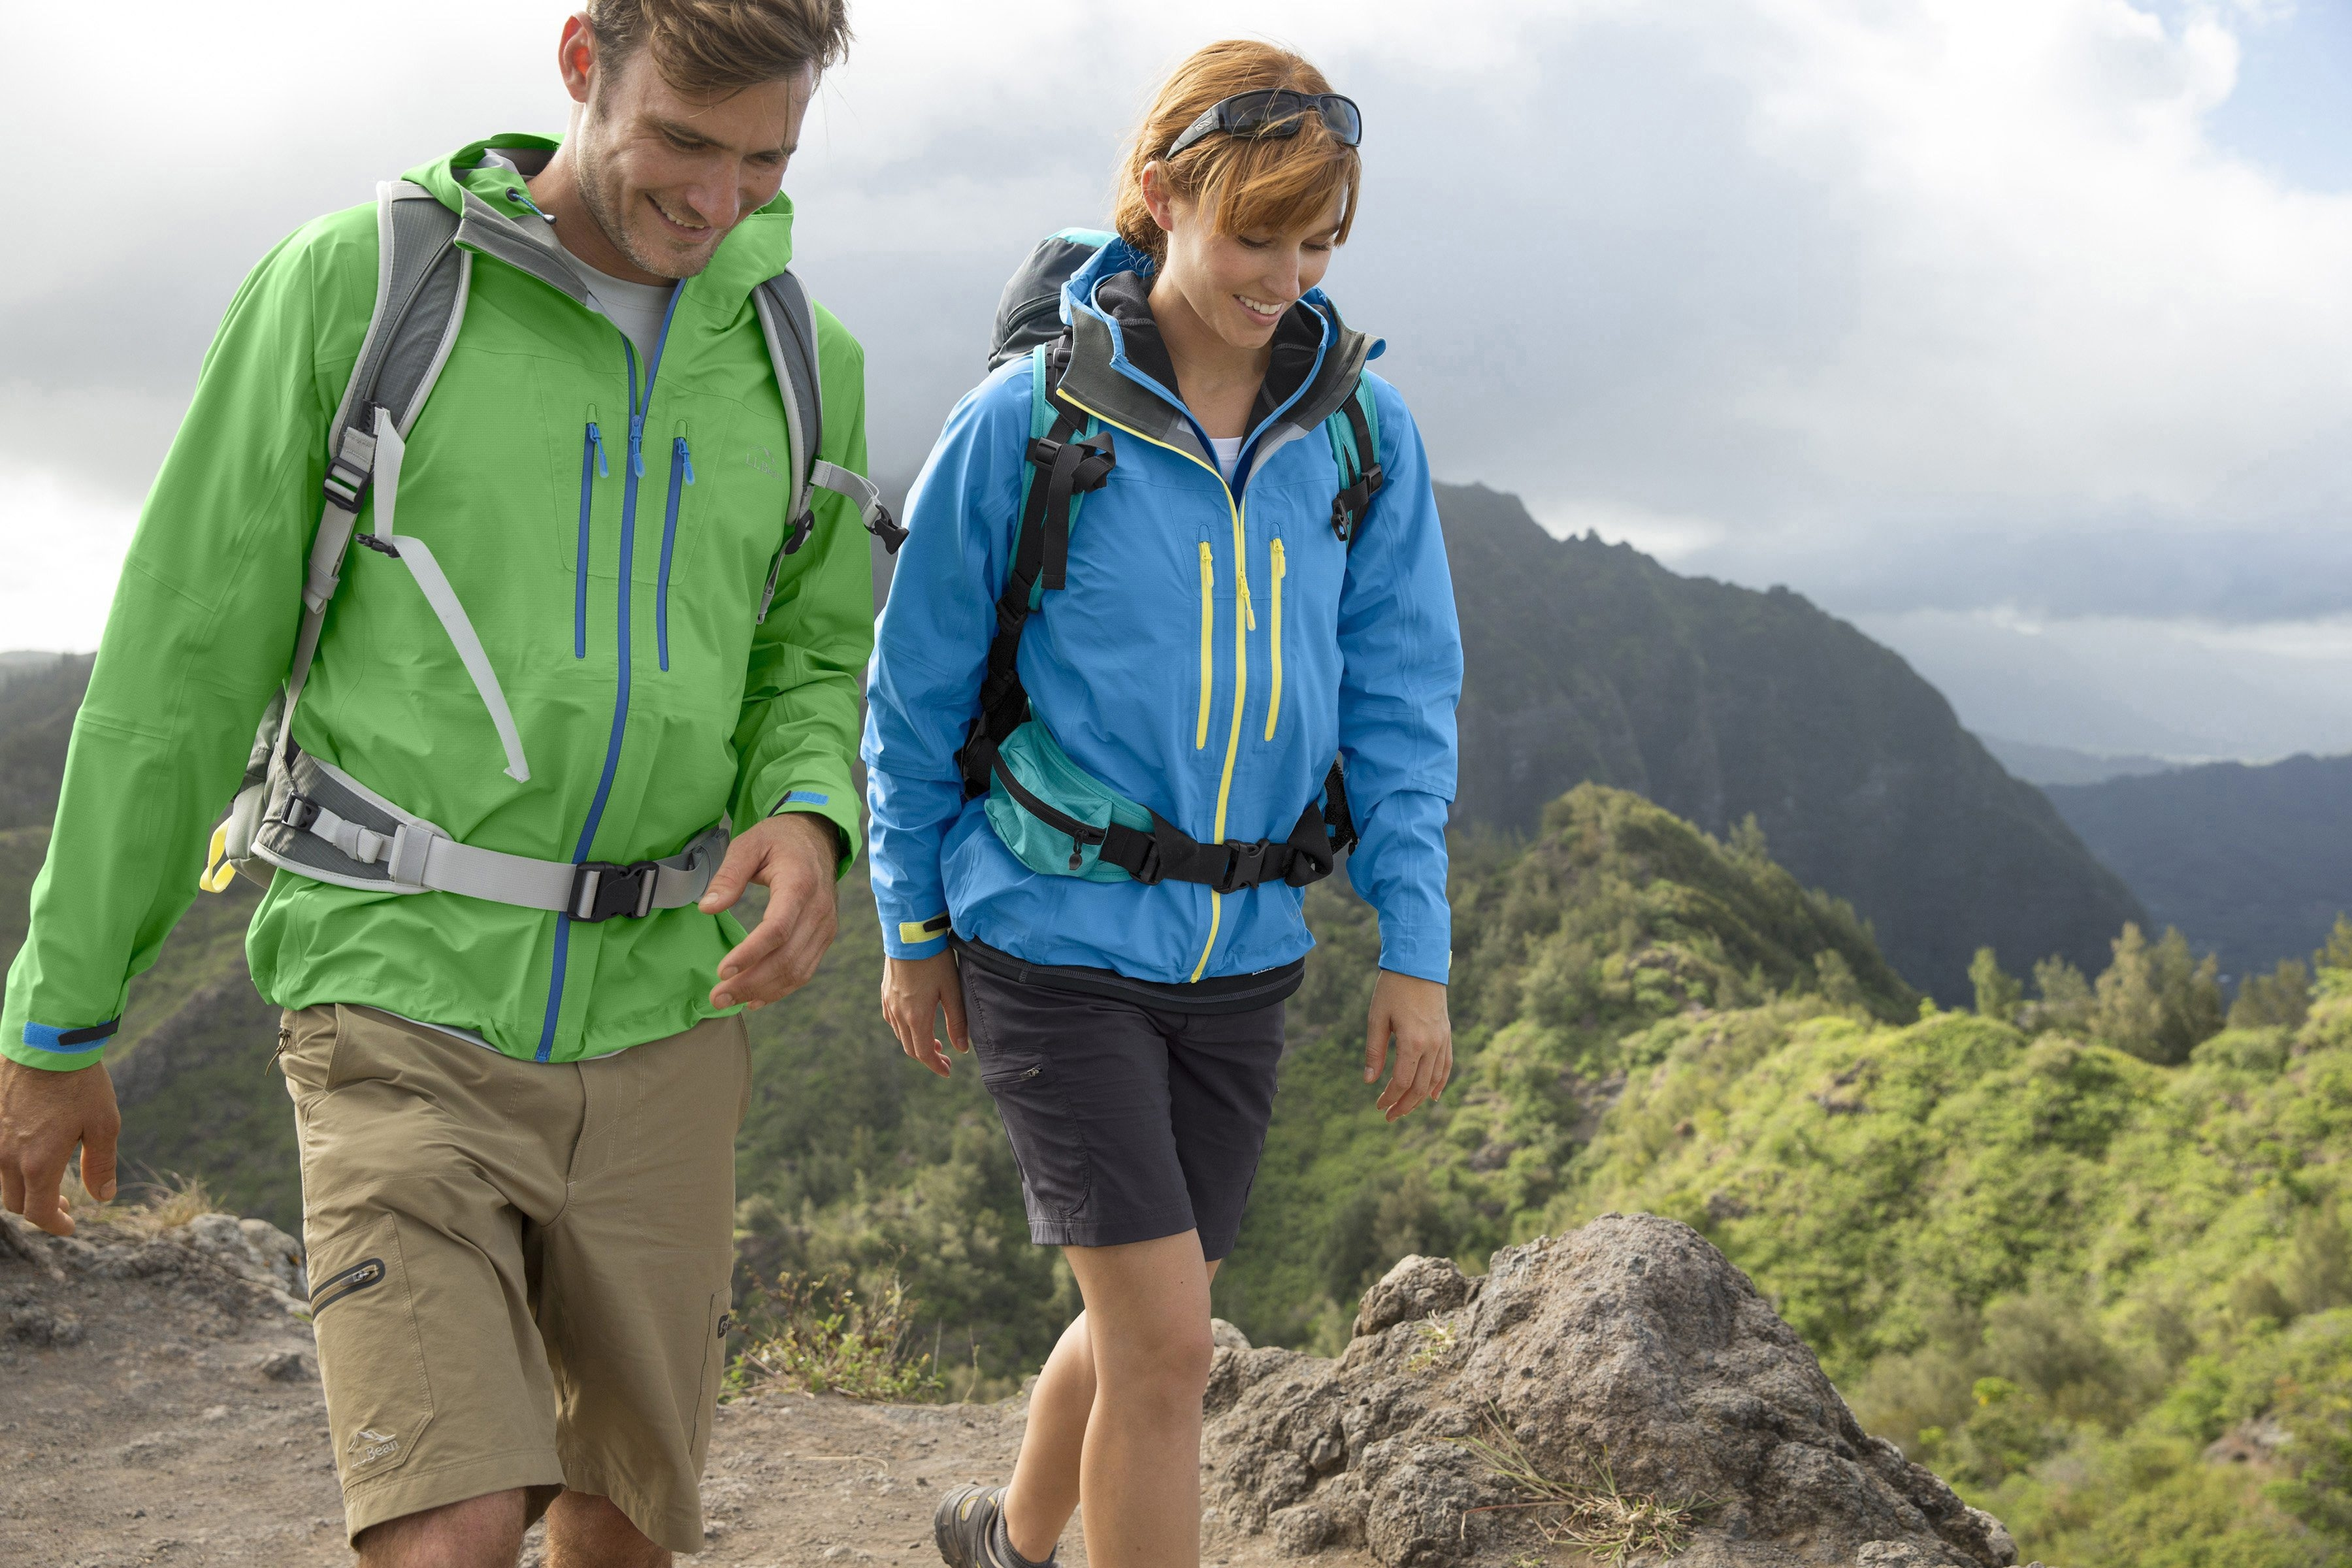 L.L.Bean's NeoShell Bounder, llbean.com, features a soft inner shell with a waterproof outer shell that's the lightest the company has made, at just over 13 ounces.